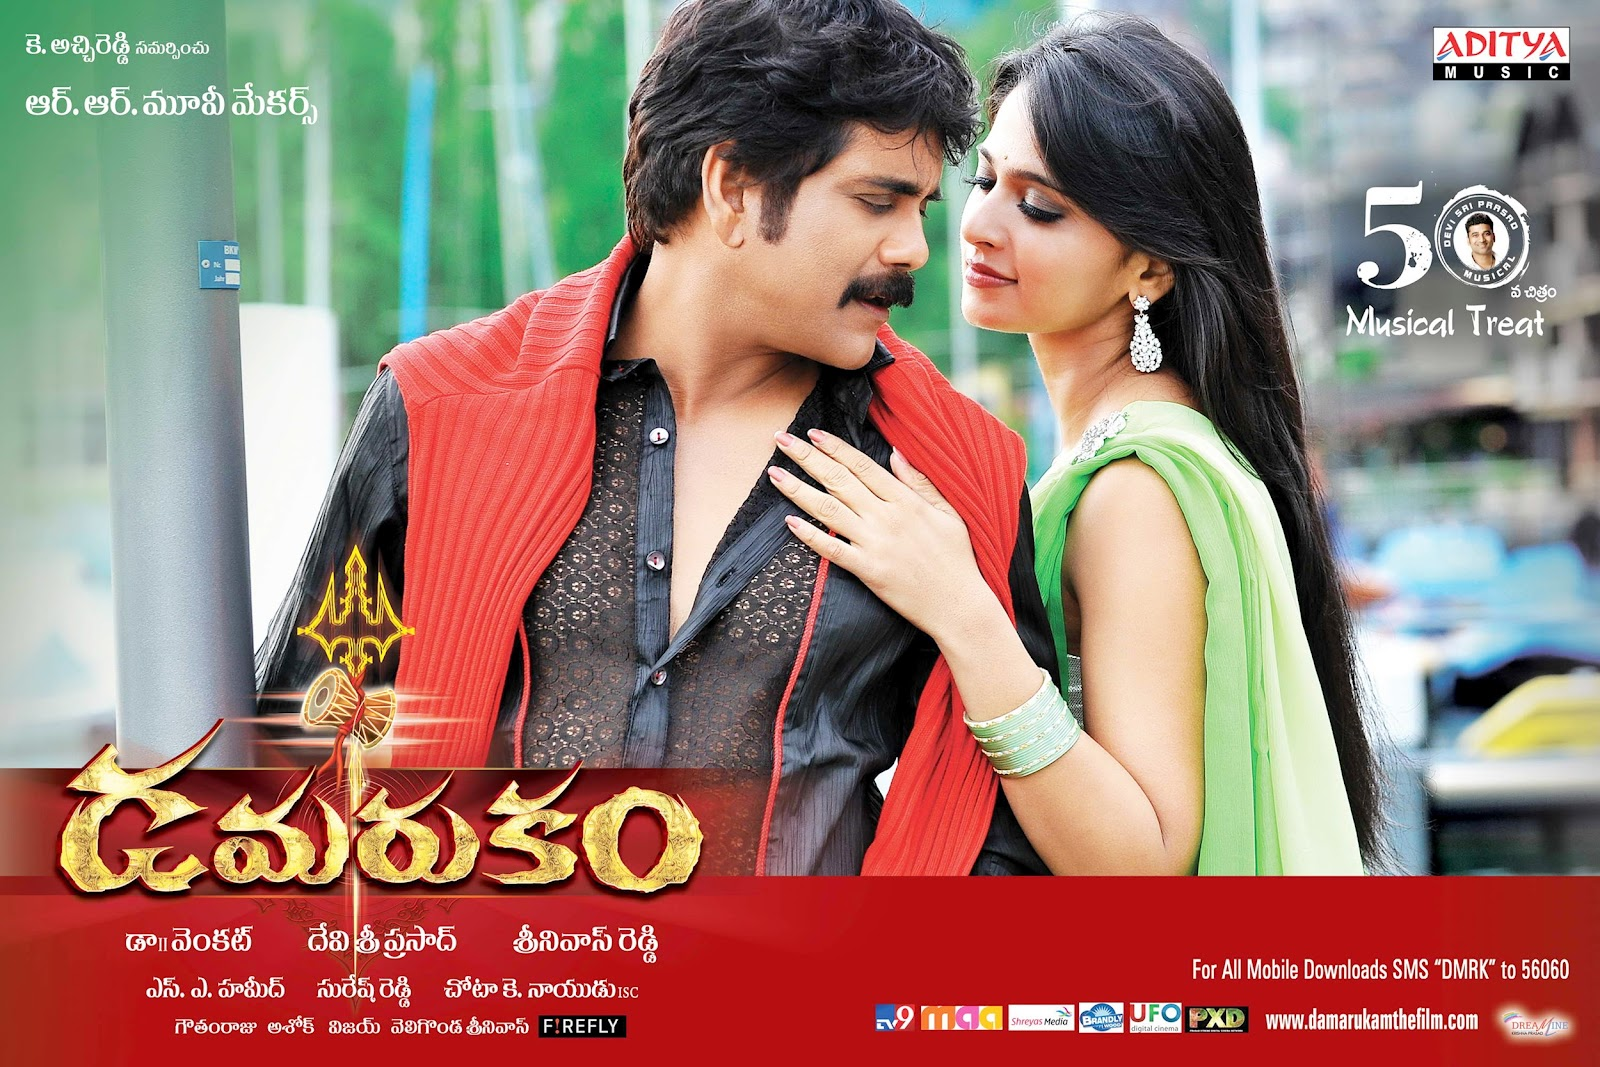 Play Telugu Top 20 Songs Online for Free or Download MP3 | Wynk